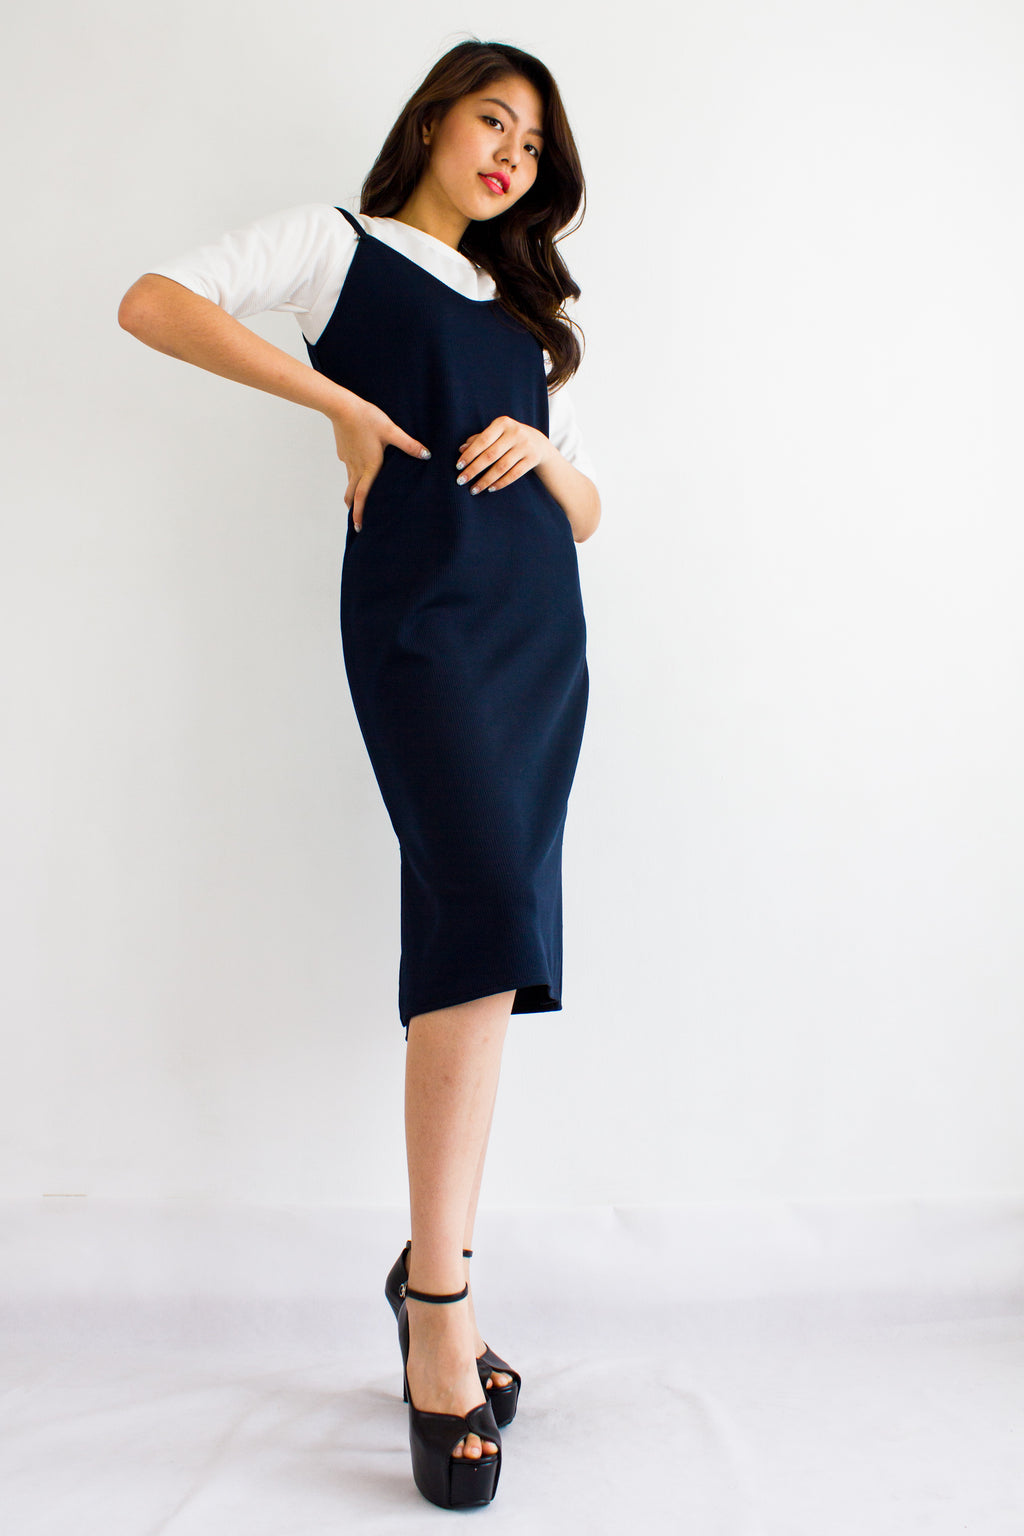 Classic Two Piece Midi Slip Dress in Navy Blue - DRESSES - Peep Boutique